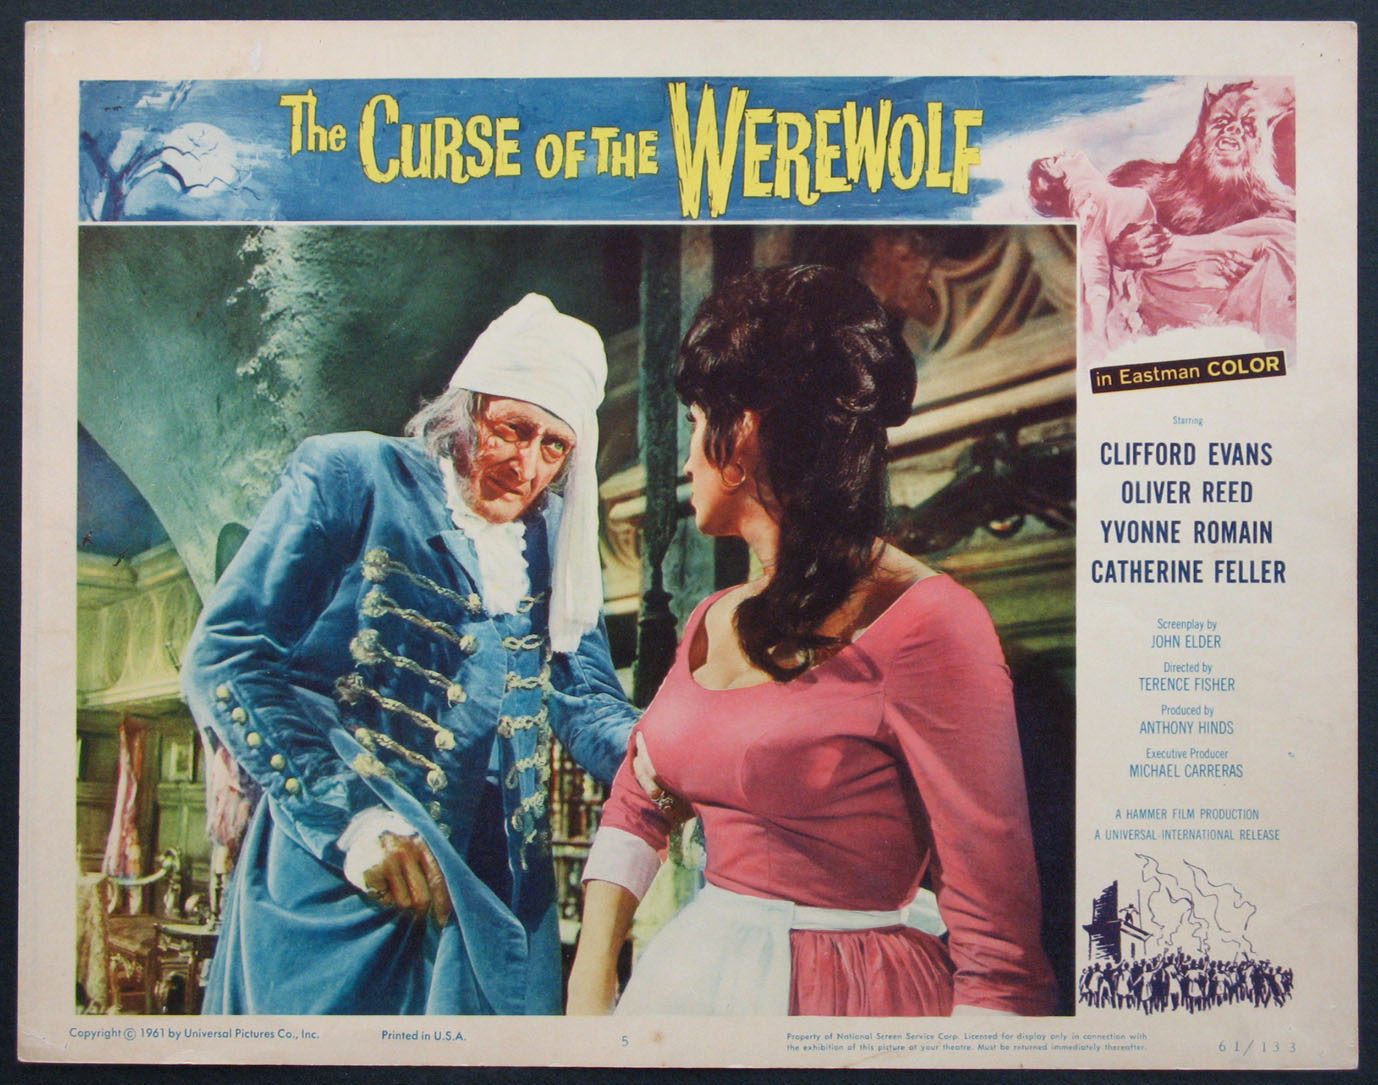 CURSE OF THE WEREWOLF @ FilmPosters.com